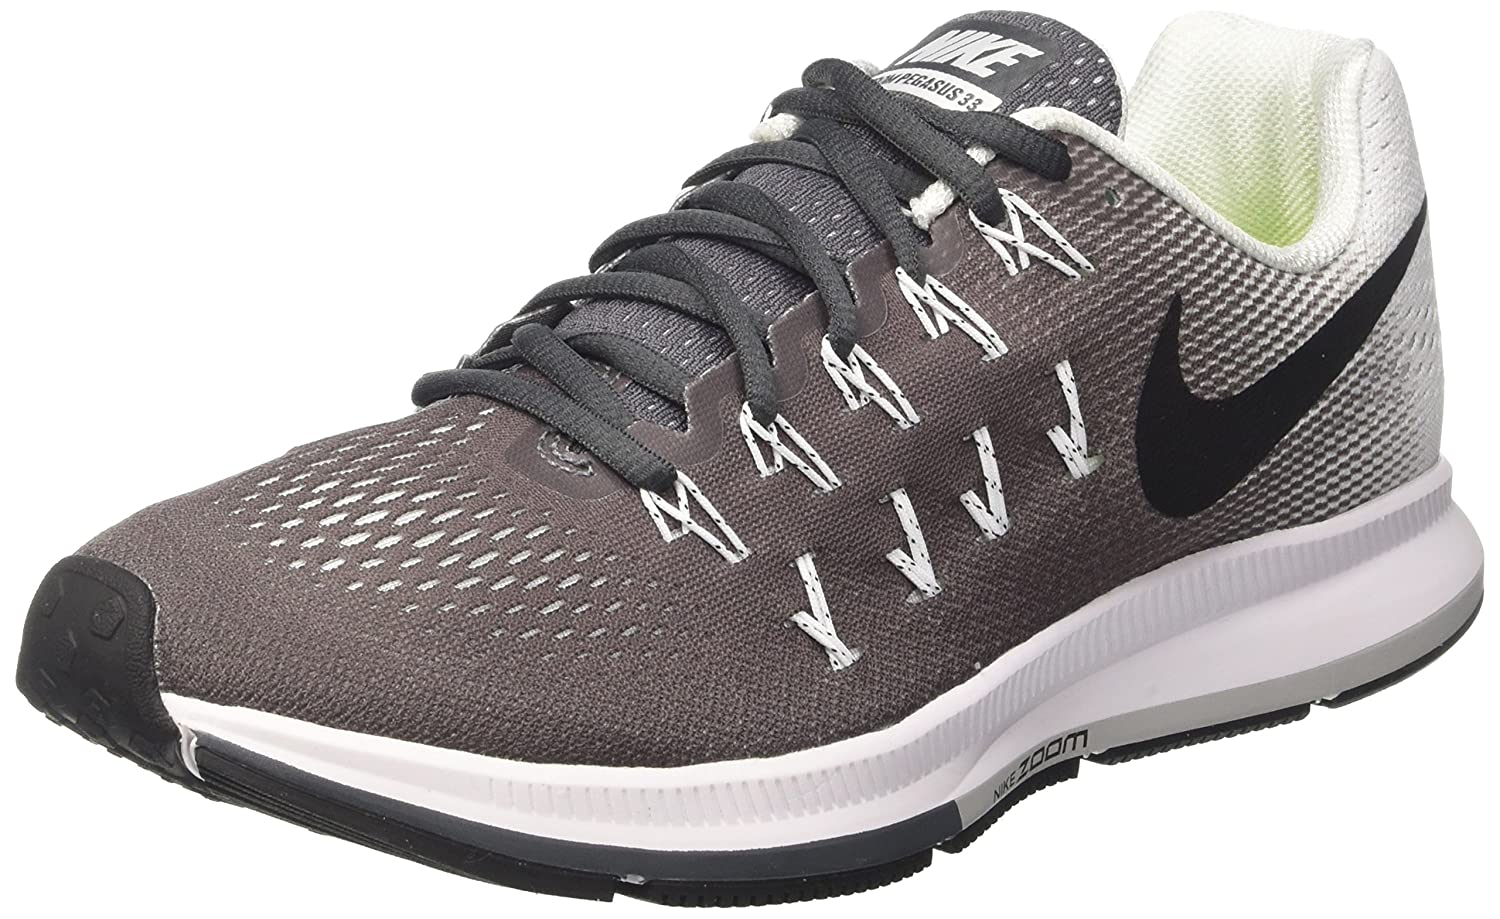 NIKE Women's B019DSG2IS Air Zoom Pegasus 33 B019DSG2IS Women's 10.5 B(M) US|Dark Grey / Black - White 38f70a